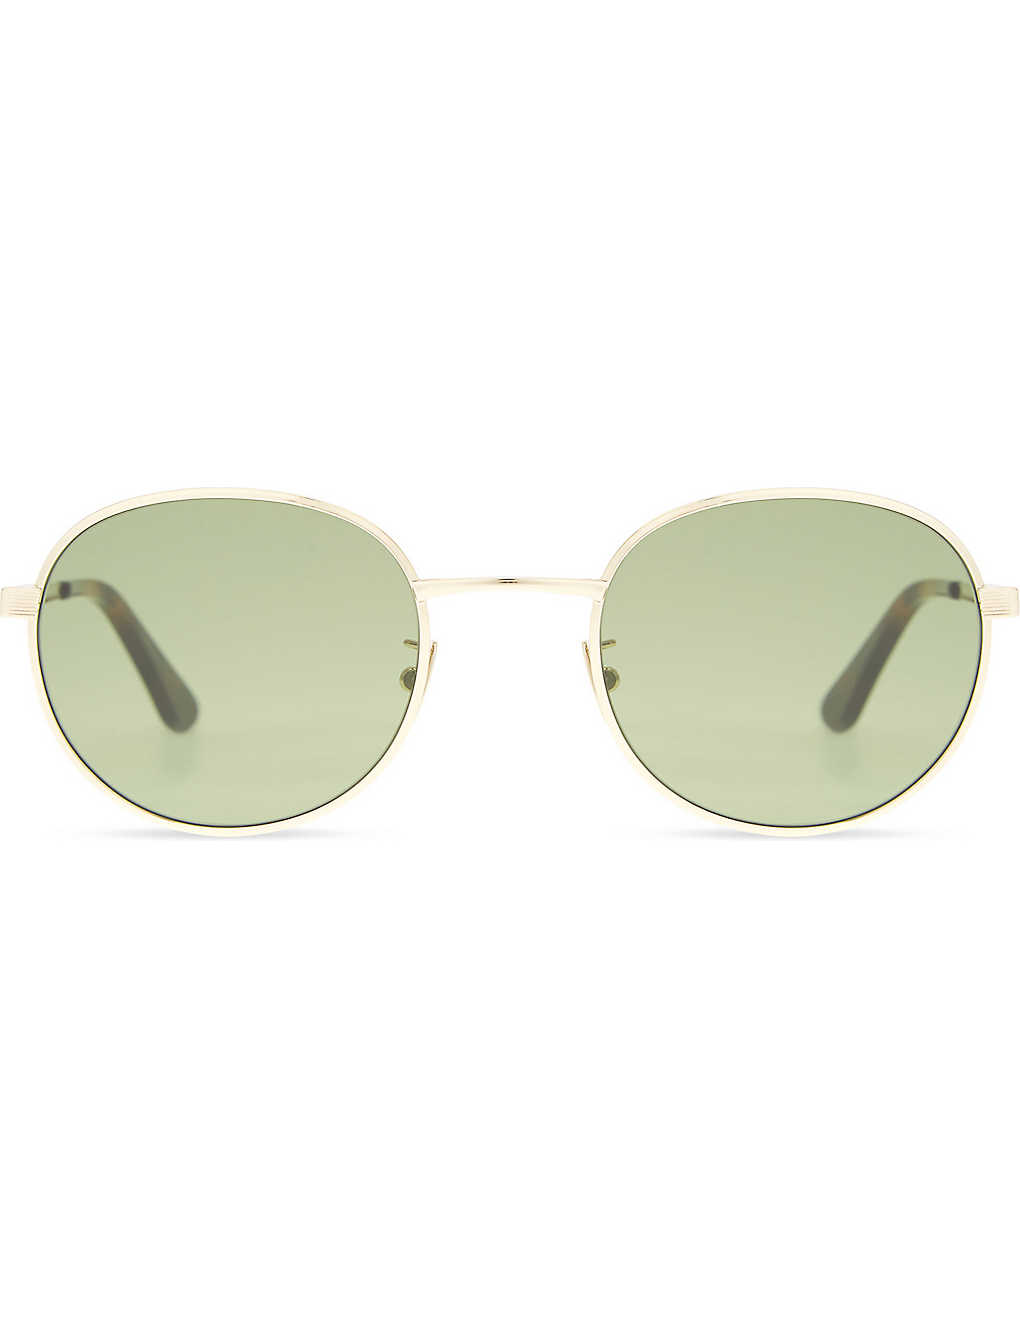 09a00de92fe SAINT LAURENT - Sl135 oval-frame sunglasses | Selfridges.com